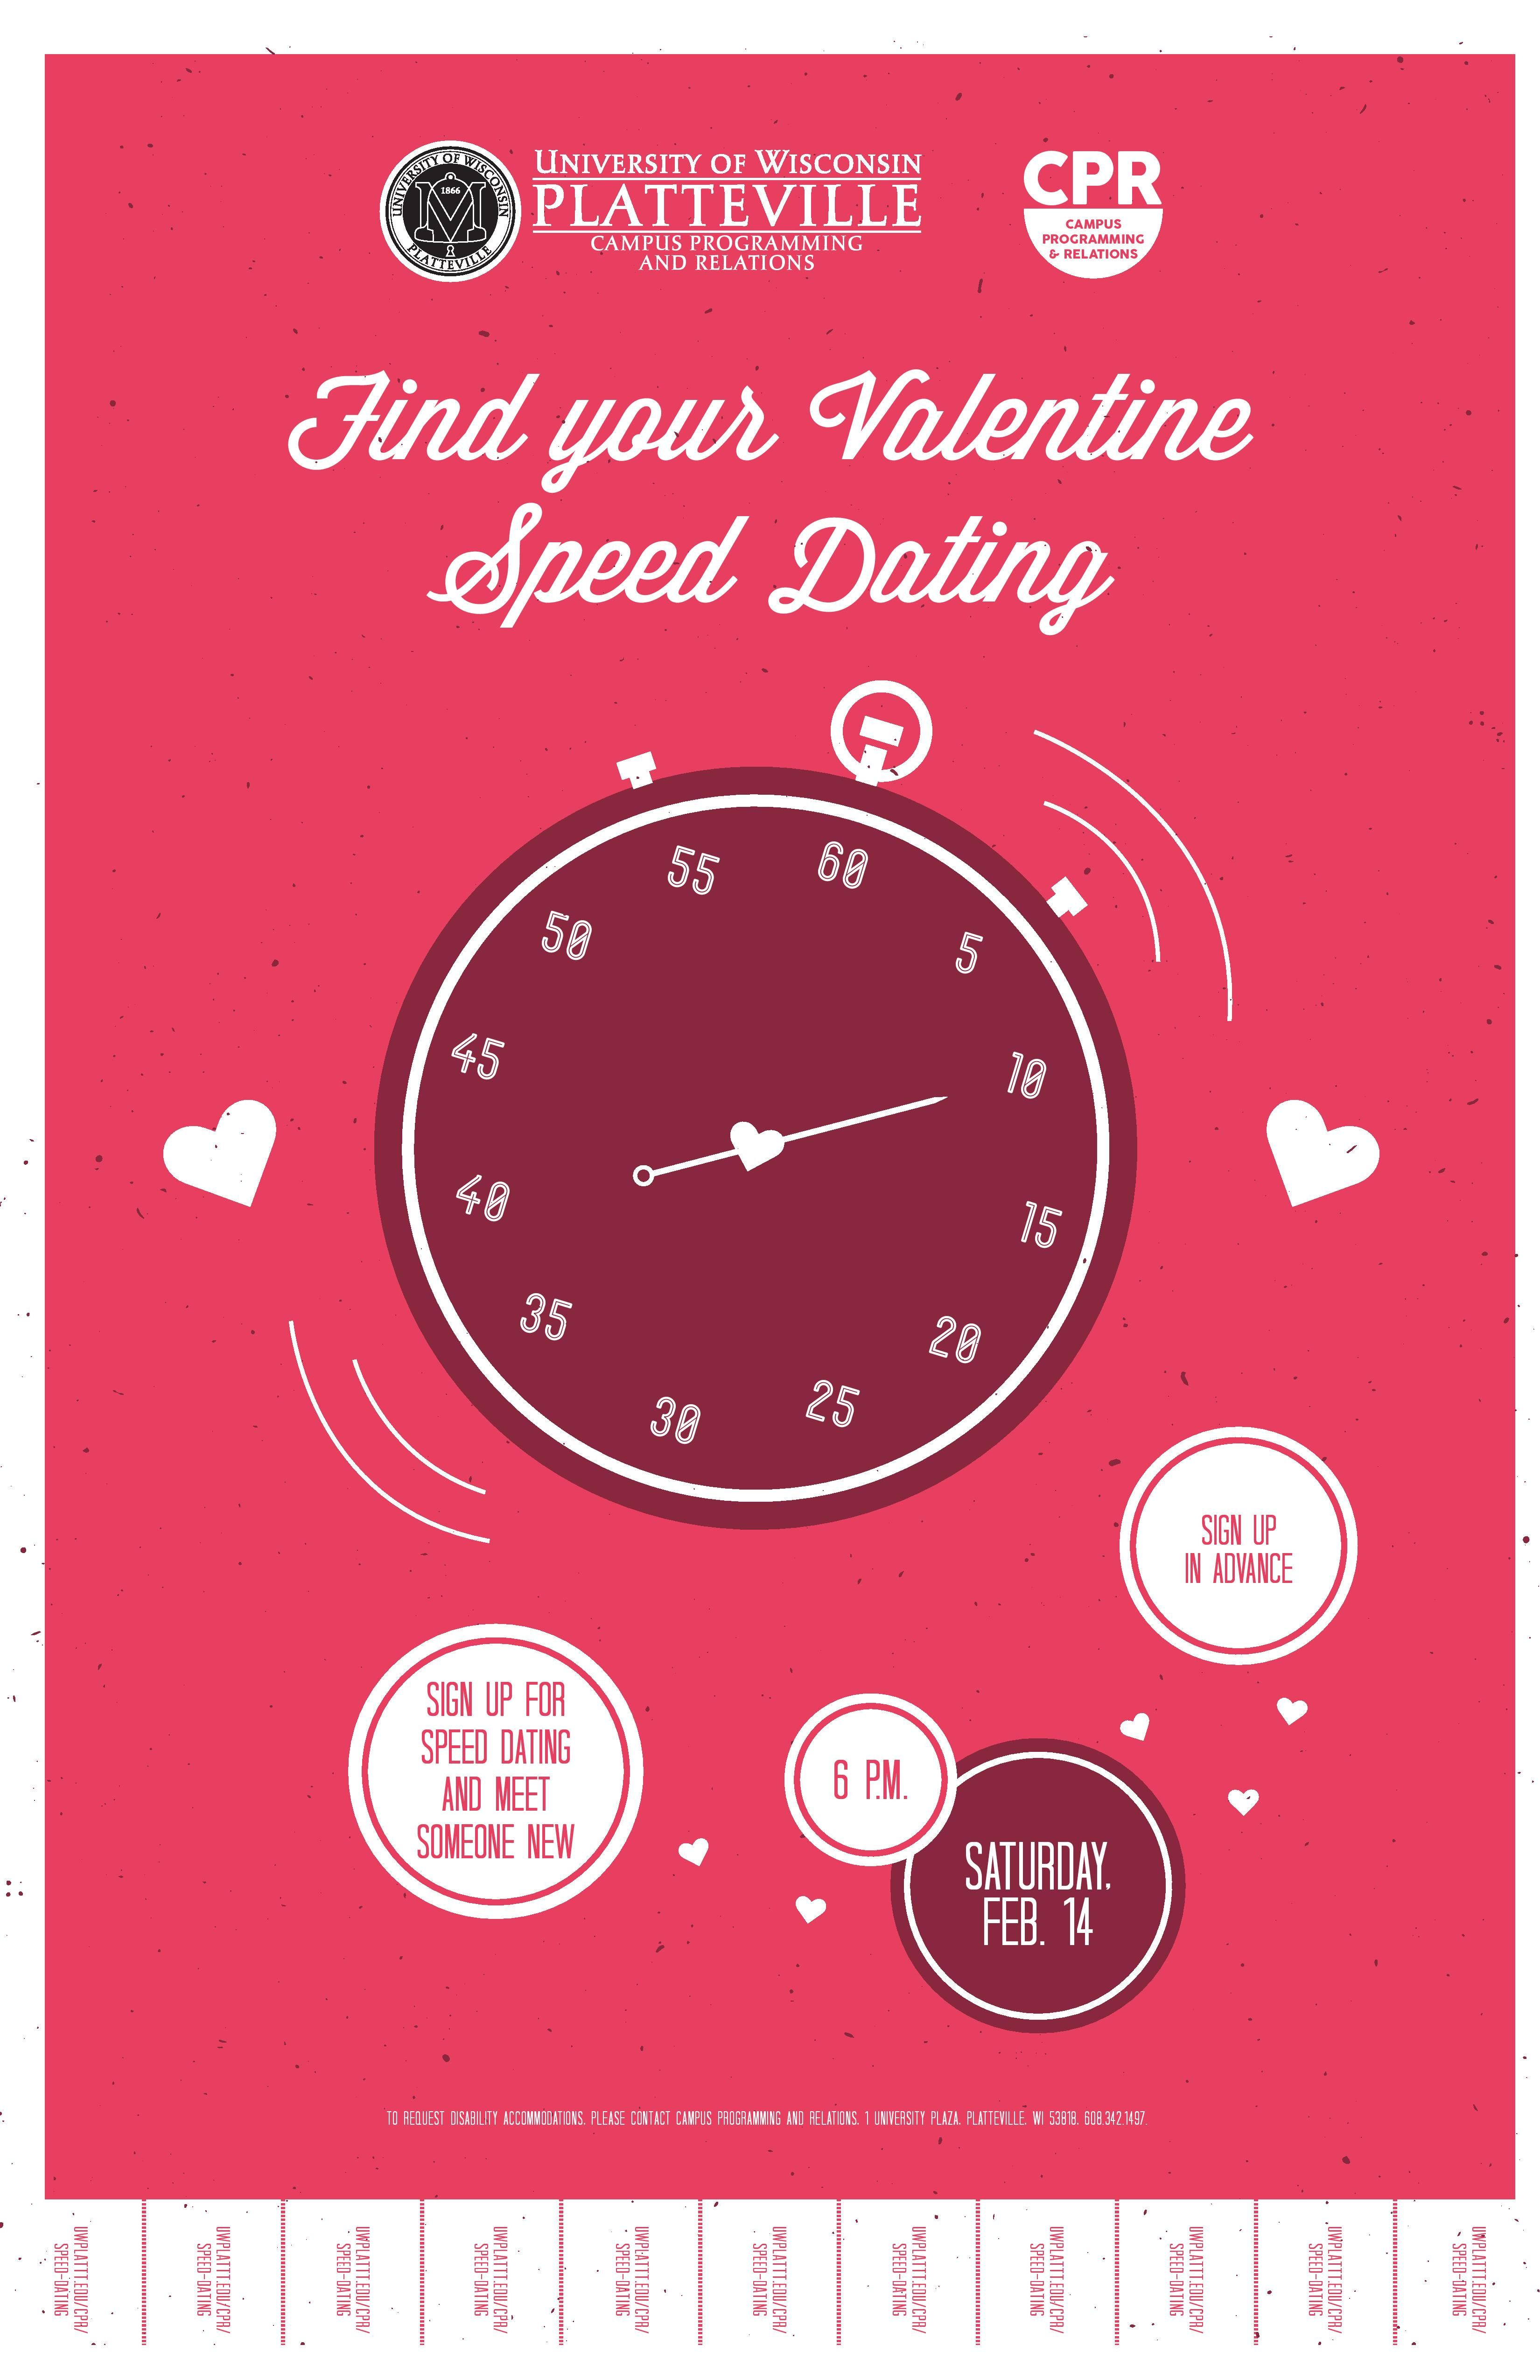 Speed Dating Speed dating, Event poster design, Funny